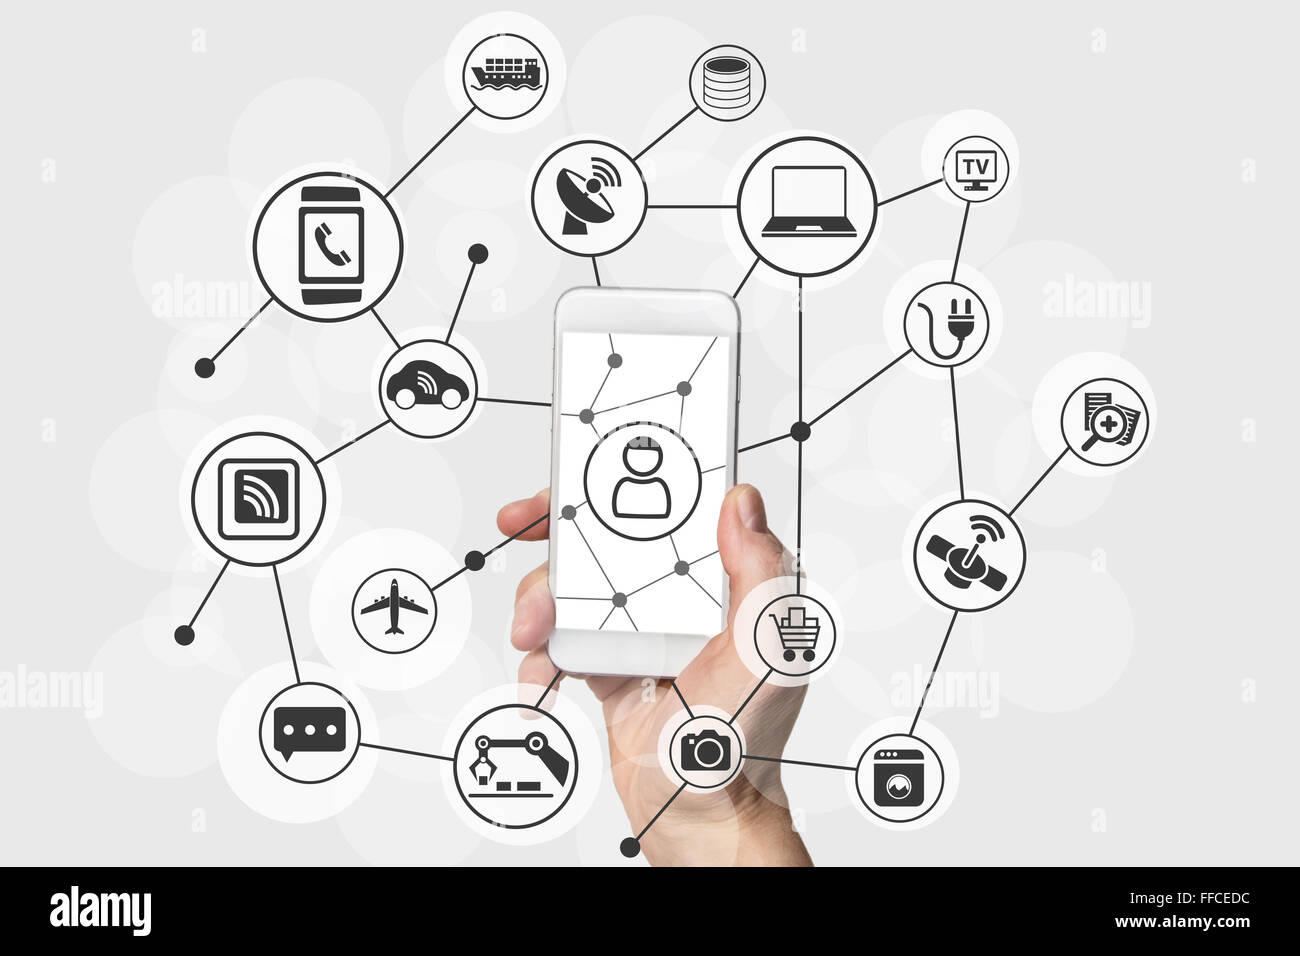 Internet of things (IOT) concept with hand holding modern smart phone - Stock Image